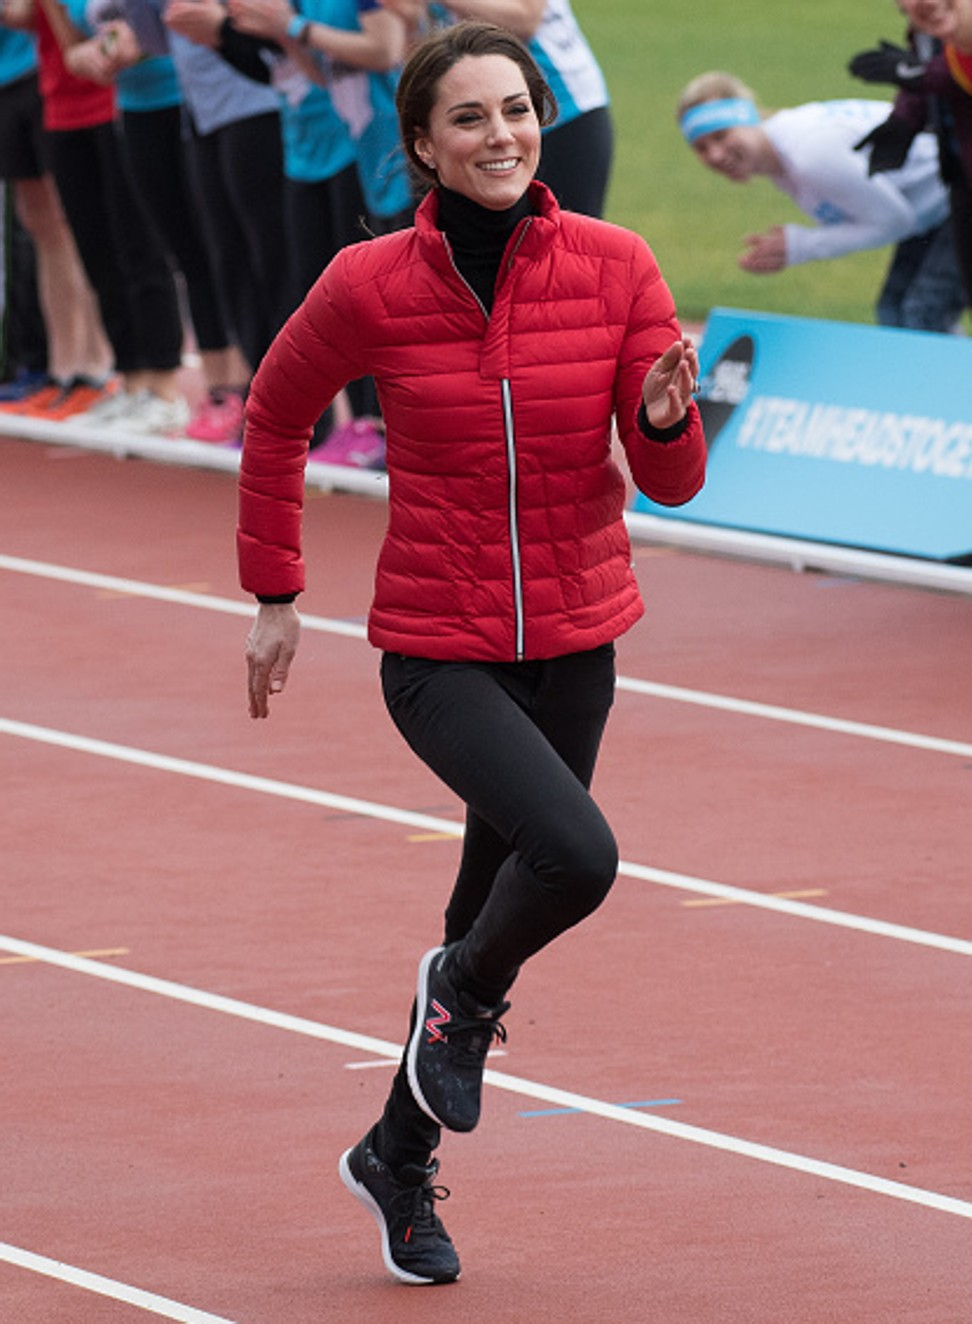 Catherine, Duchess of Cambridge, wears Sweaty Betty leisurewear during a training day for the London Marathon at Olympic Park, London. Photo: Samir Hussein